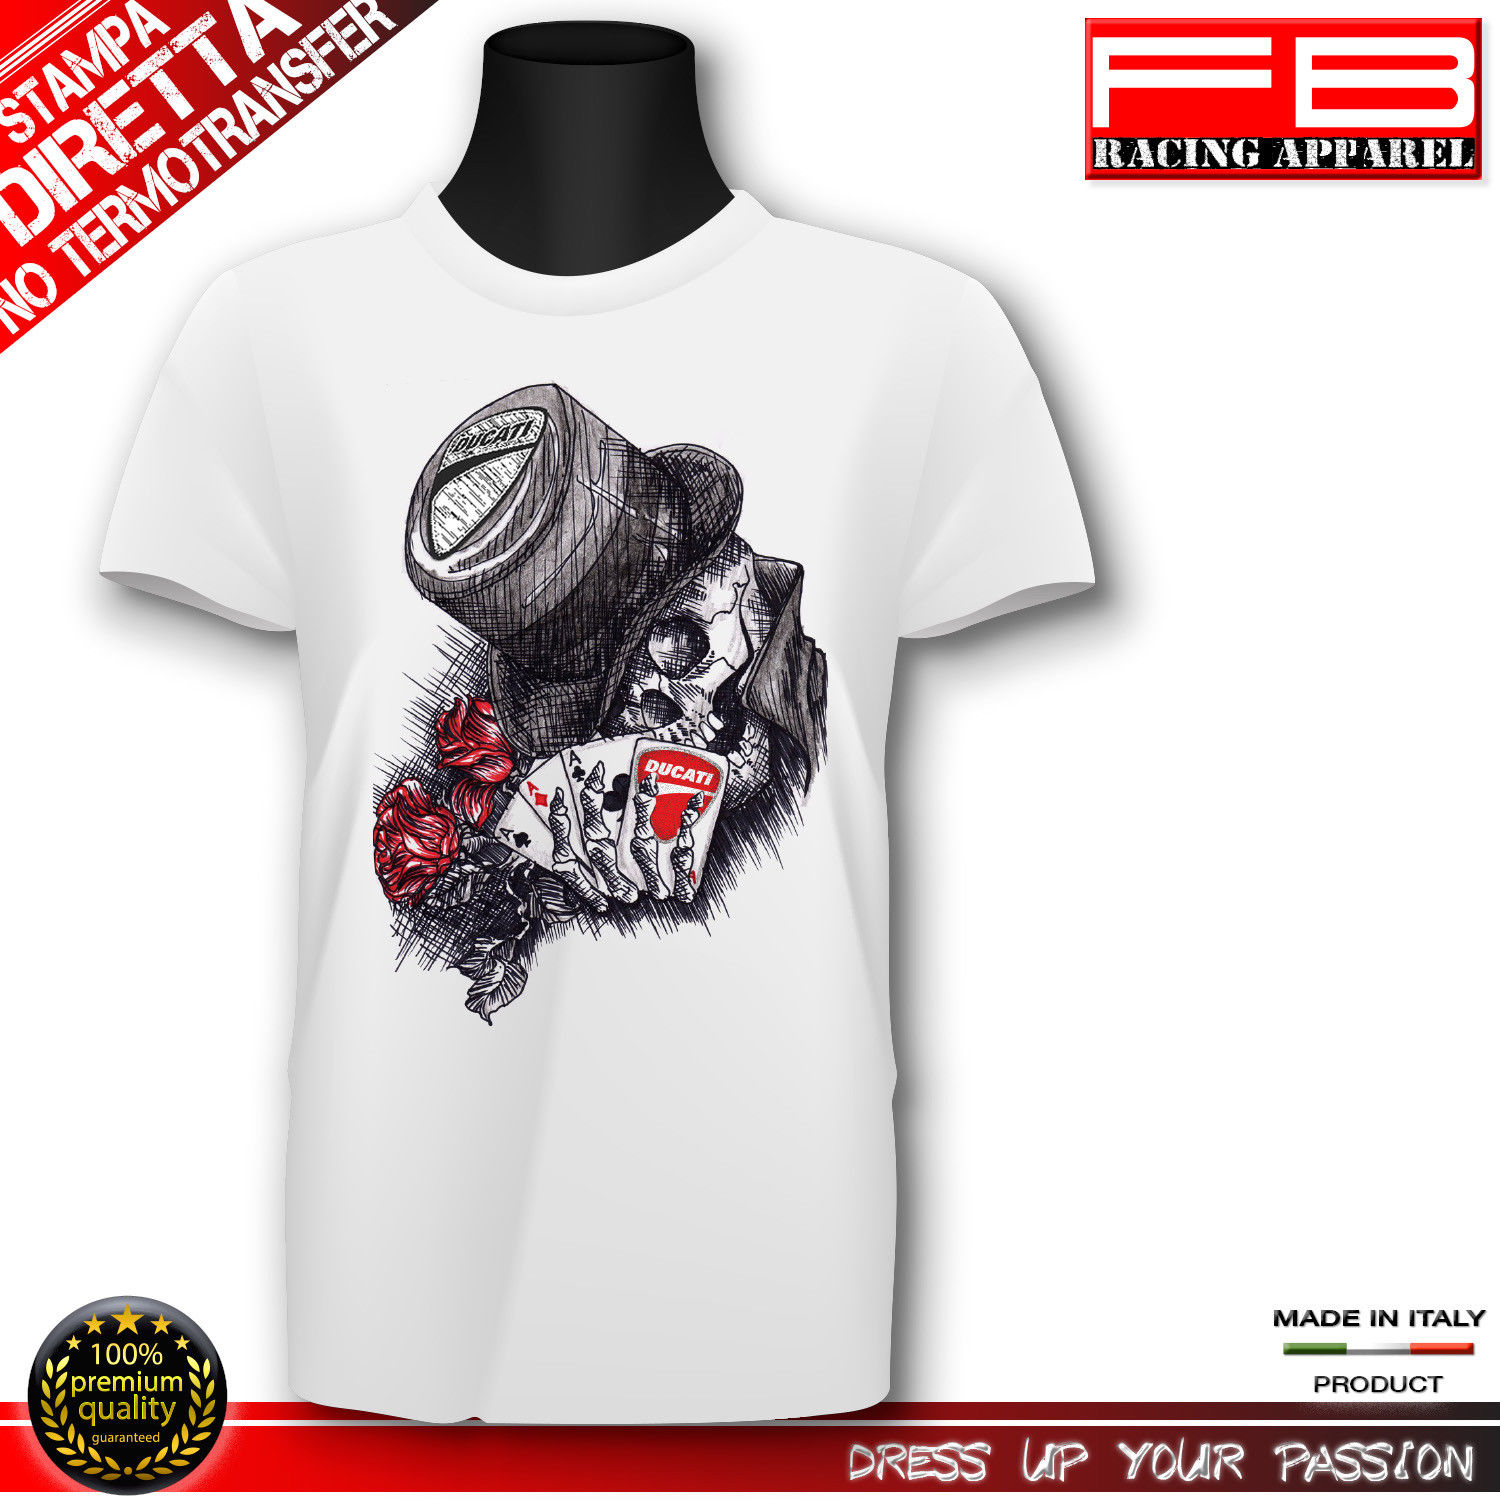 Ra T Vel Us 12 06 5 Off 2018 Fashion Italian Motorcycle Fans Art Logo Panigale Diavel 916 748 Hypermotard Tee Shirt Tee Shirt In T Shirts From Men S Clothing